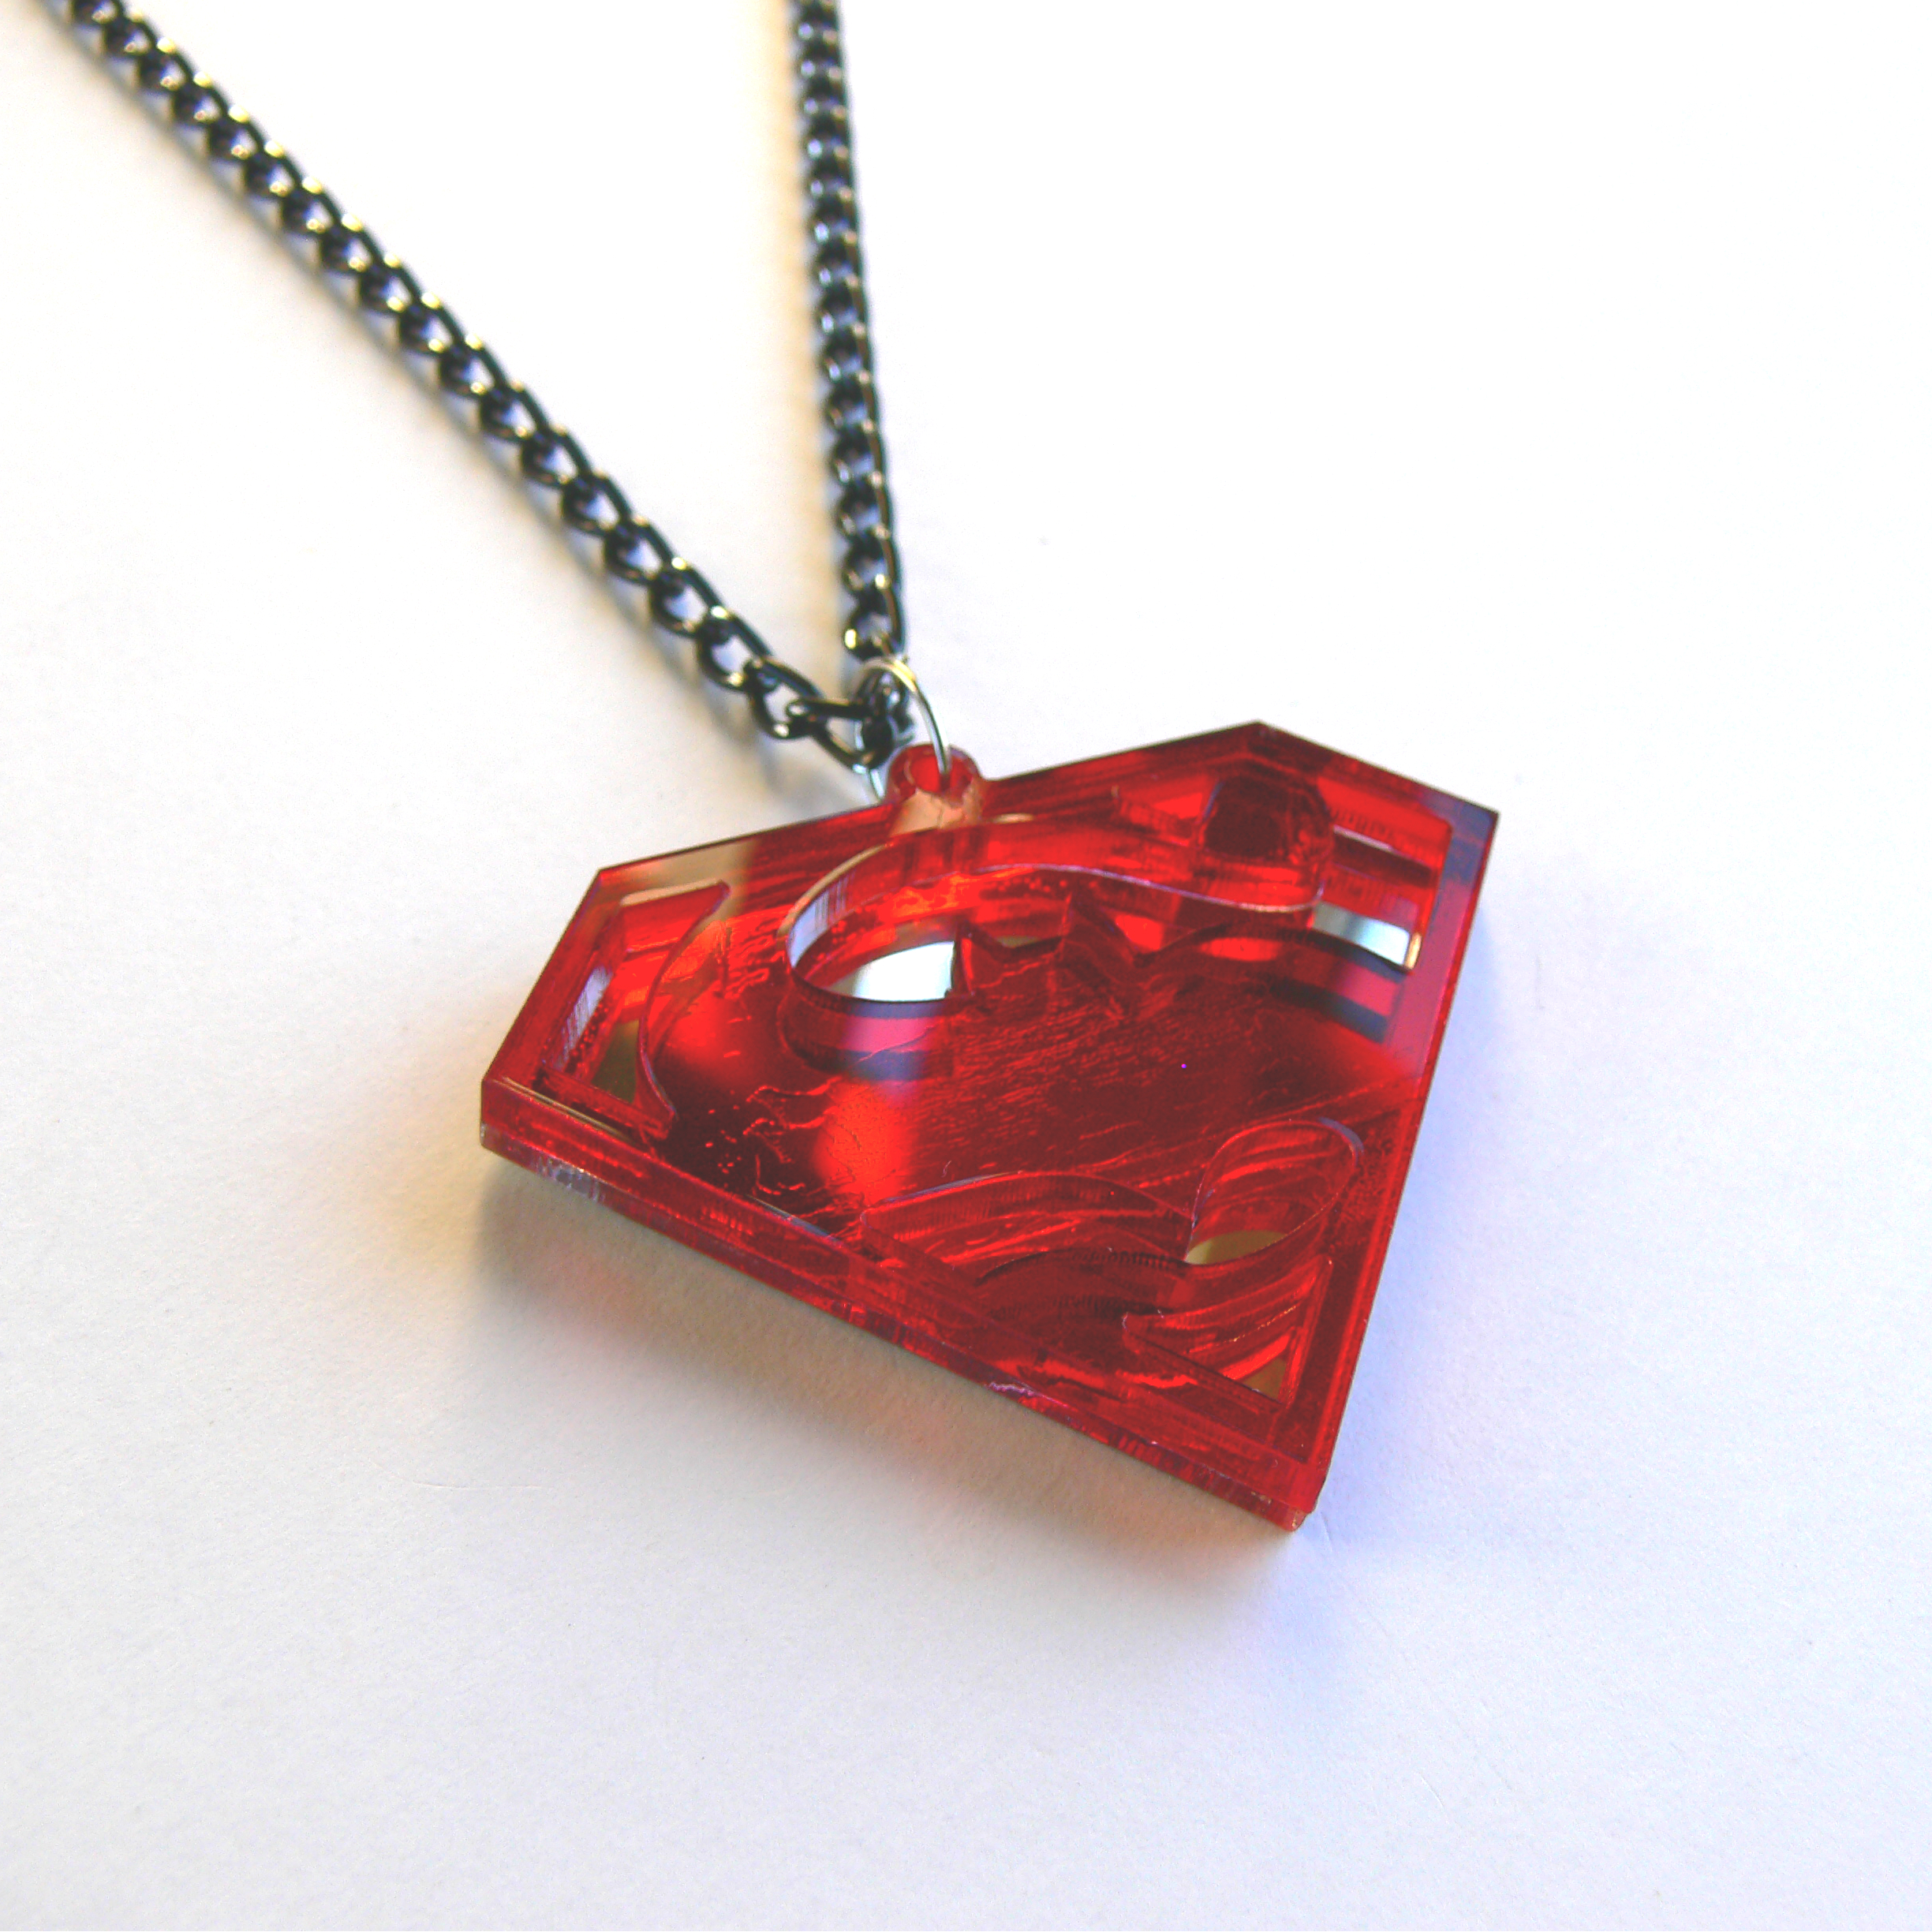 plastic laser transformers face from red mirror blue two and prev product cut pendant necklace